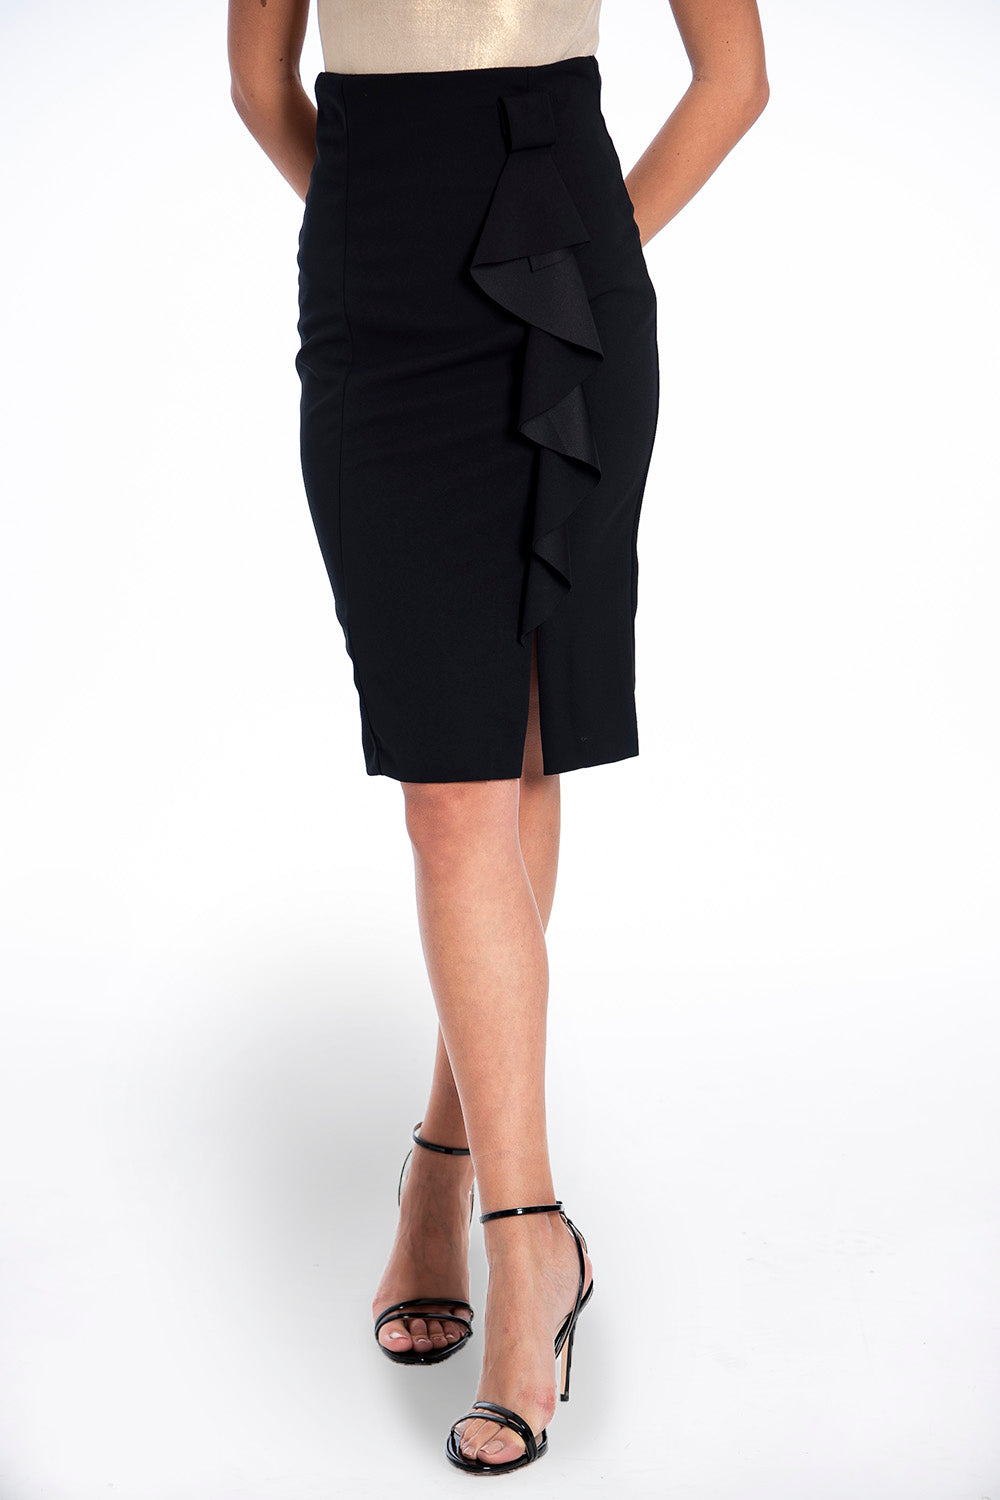 Rinascimento pencil skirt with front ruffles